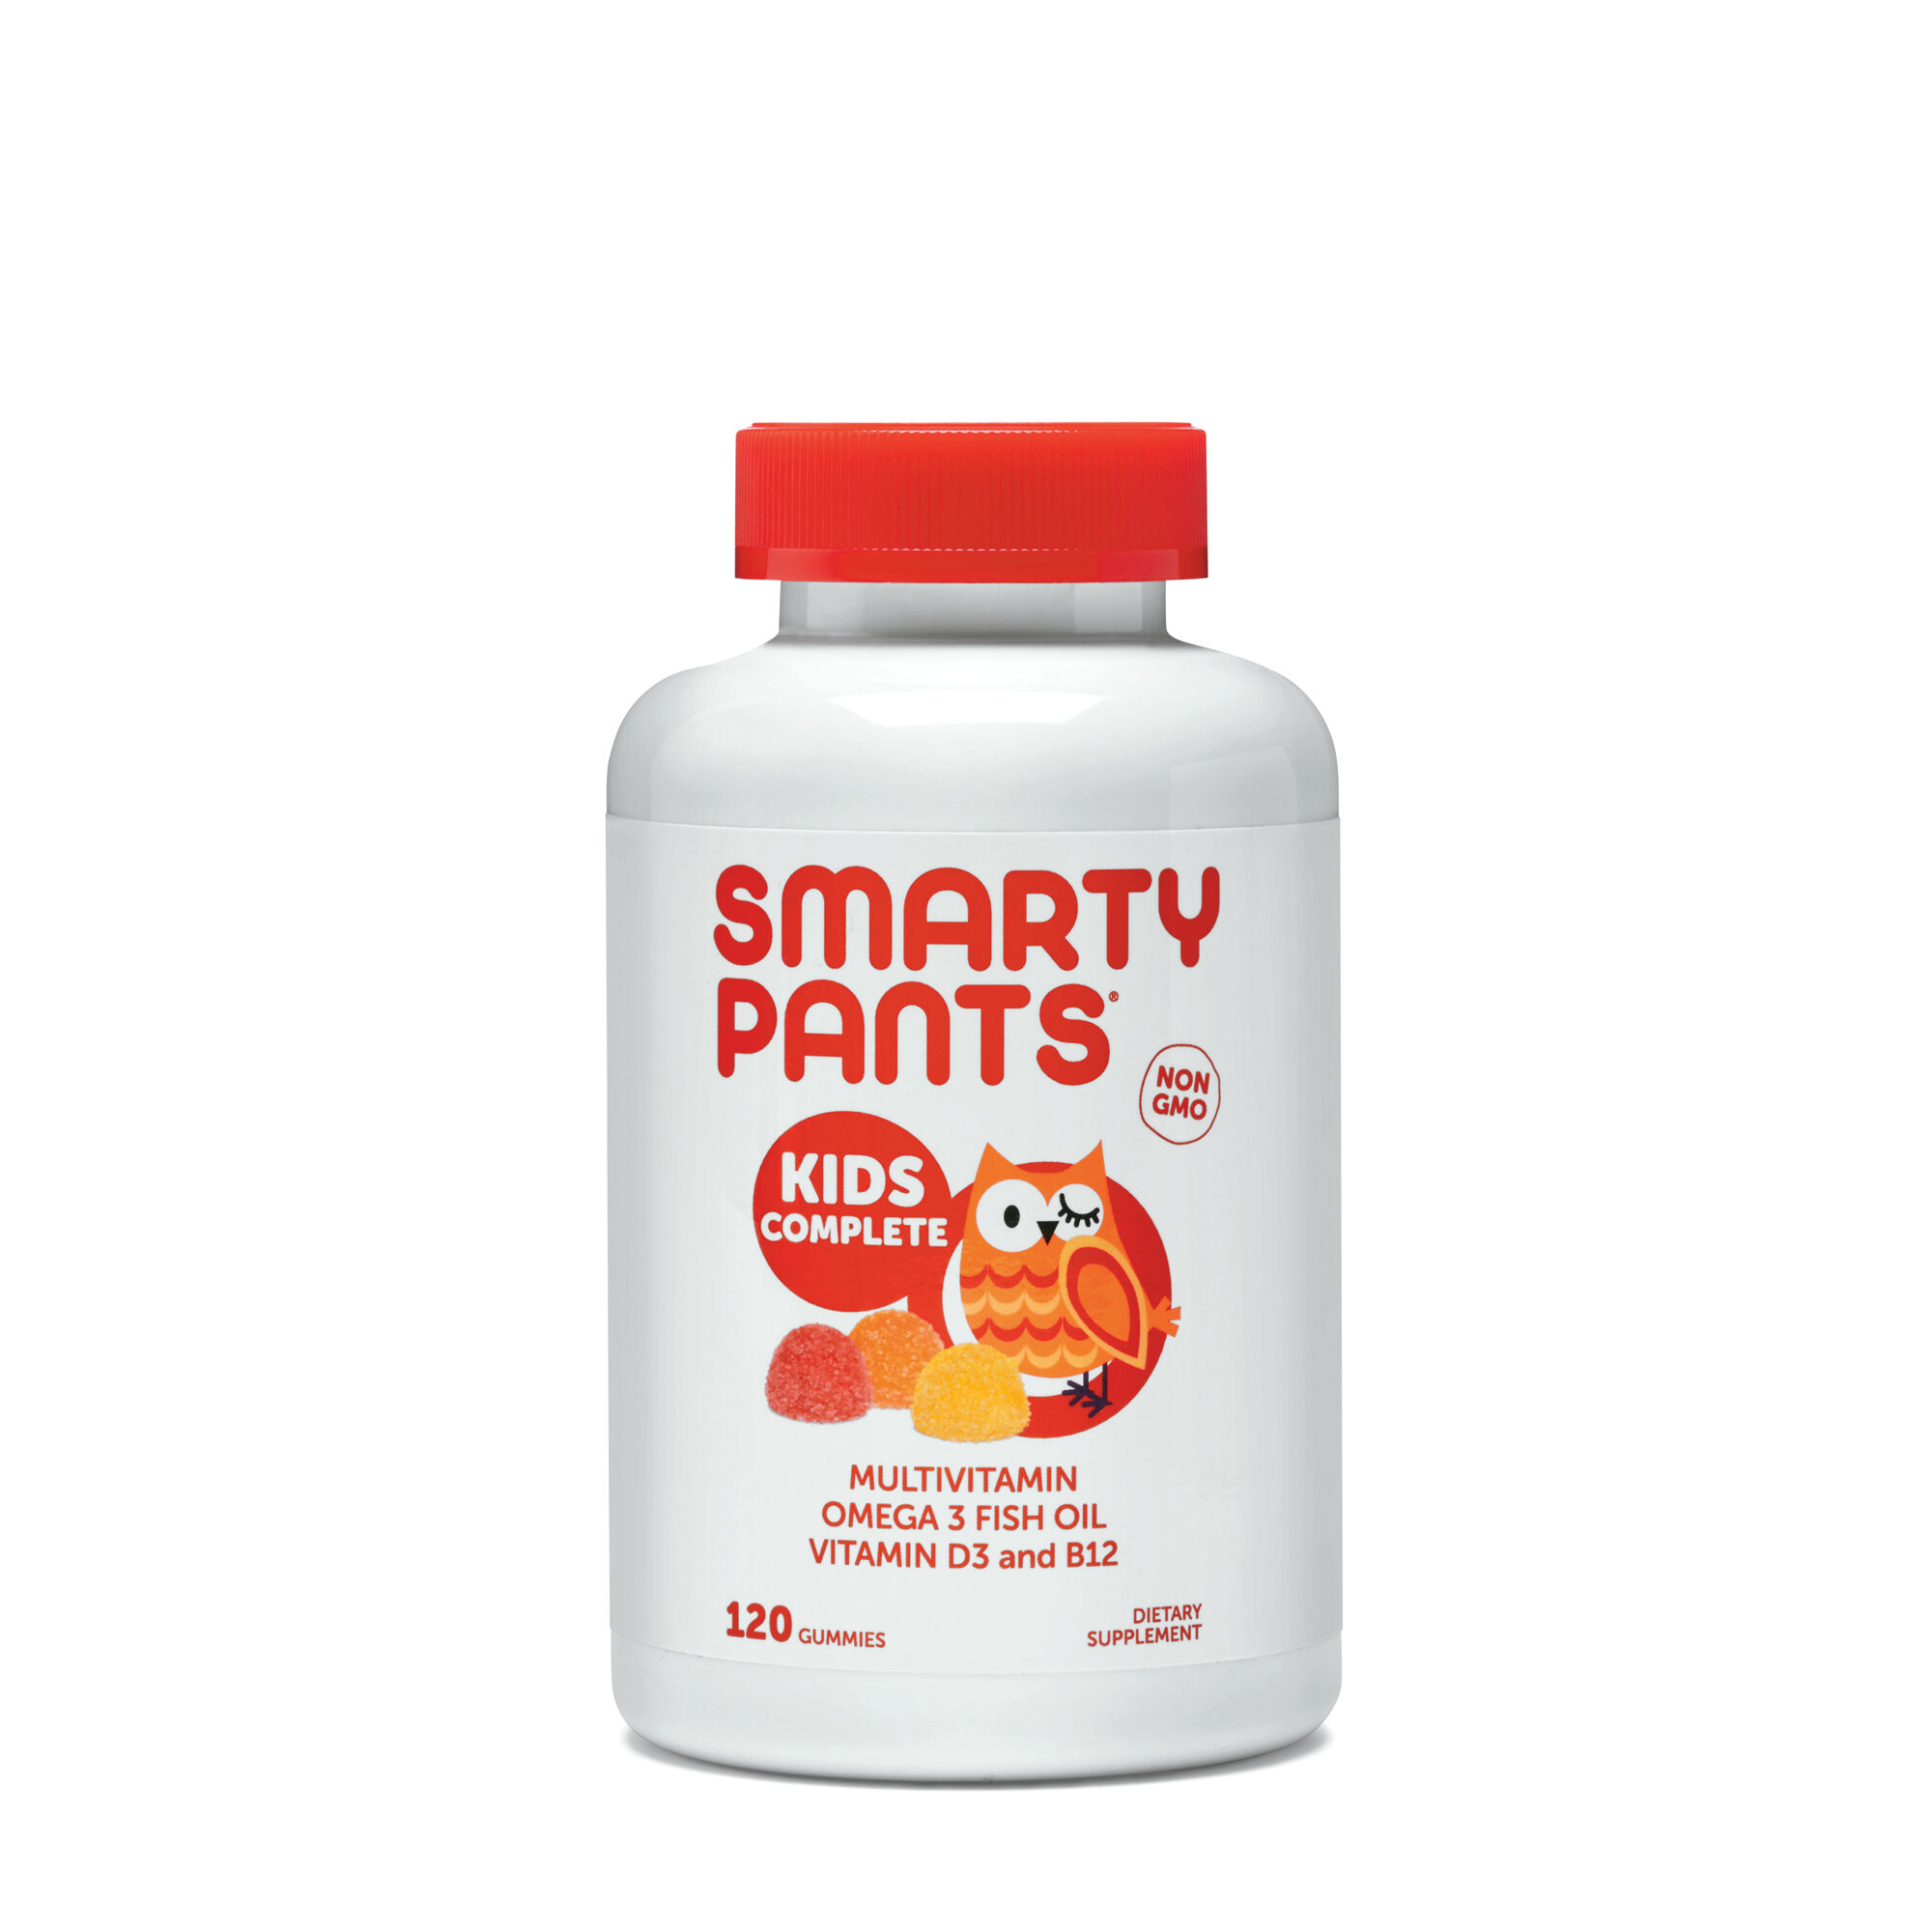 supplements code of s name life the asp trust for kids vitamin b glory raw you health nature probiotics garden